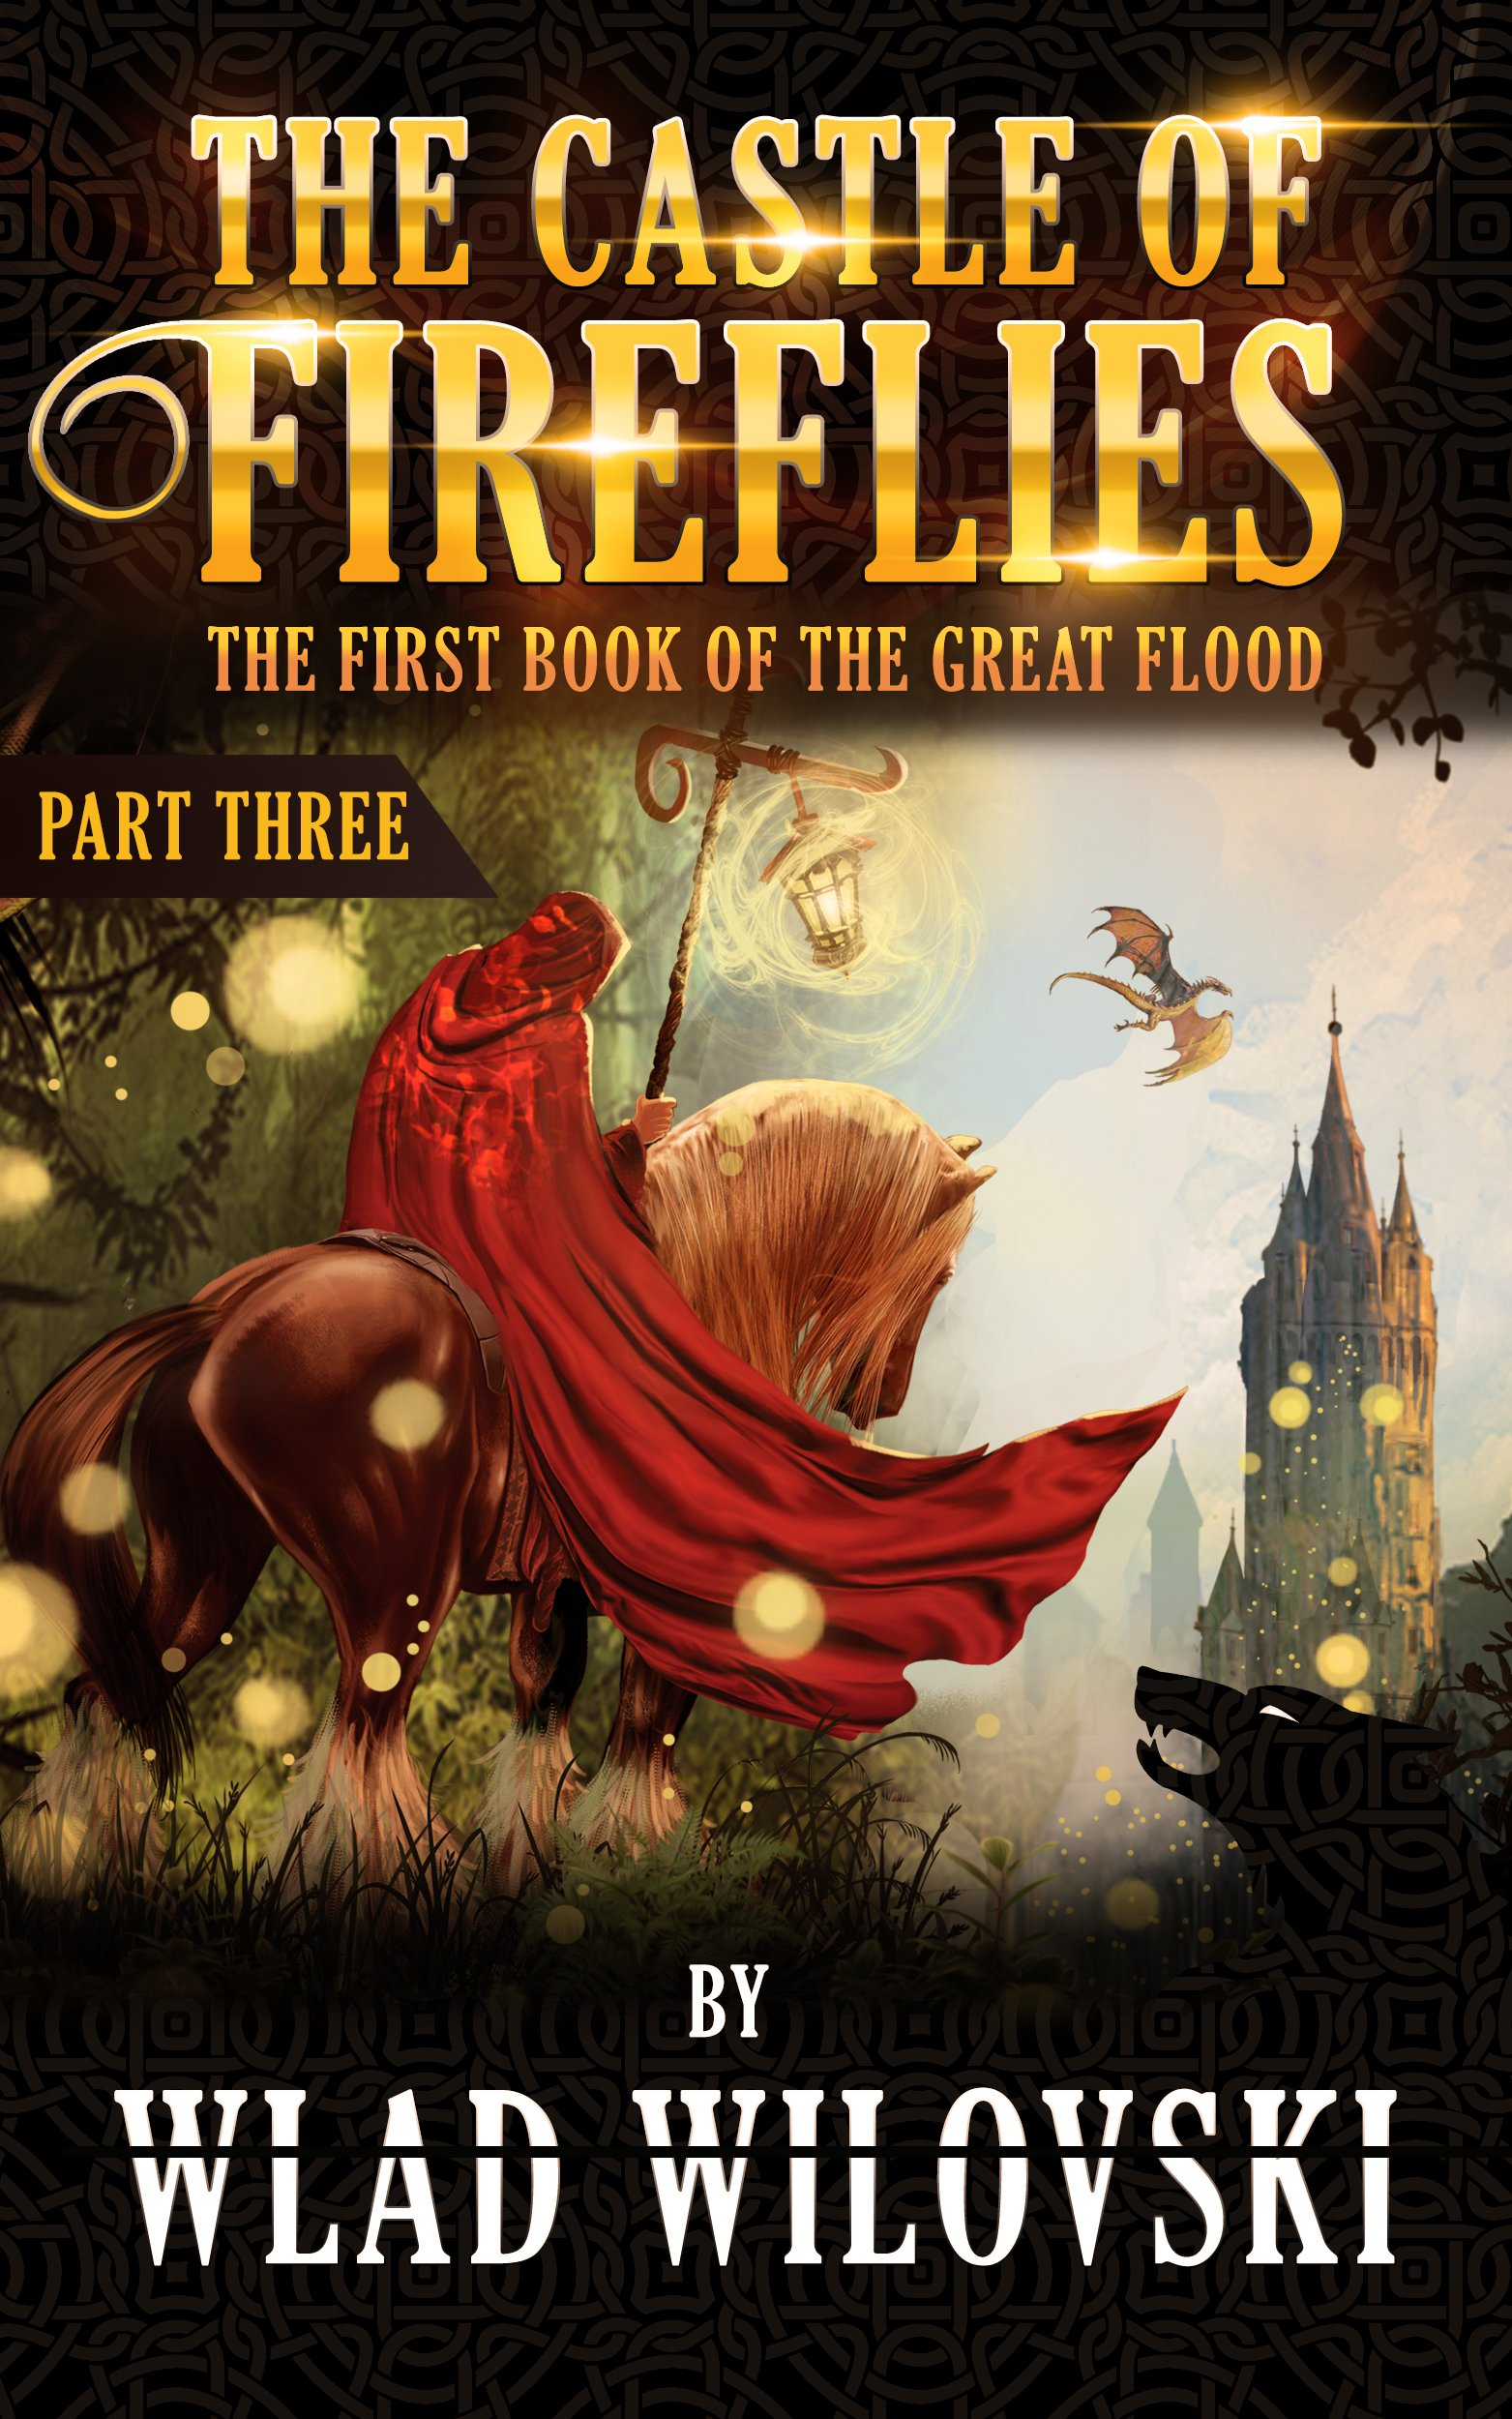 The Castle of Fireflies: Part Three